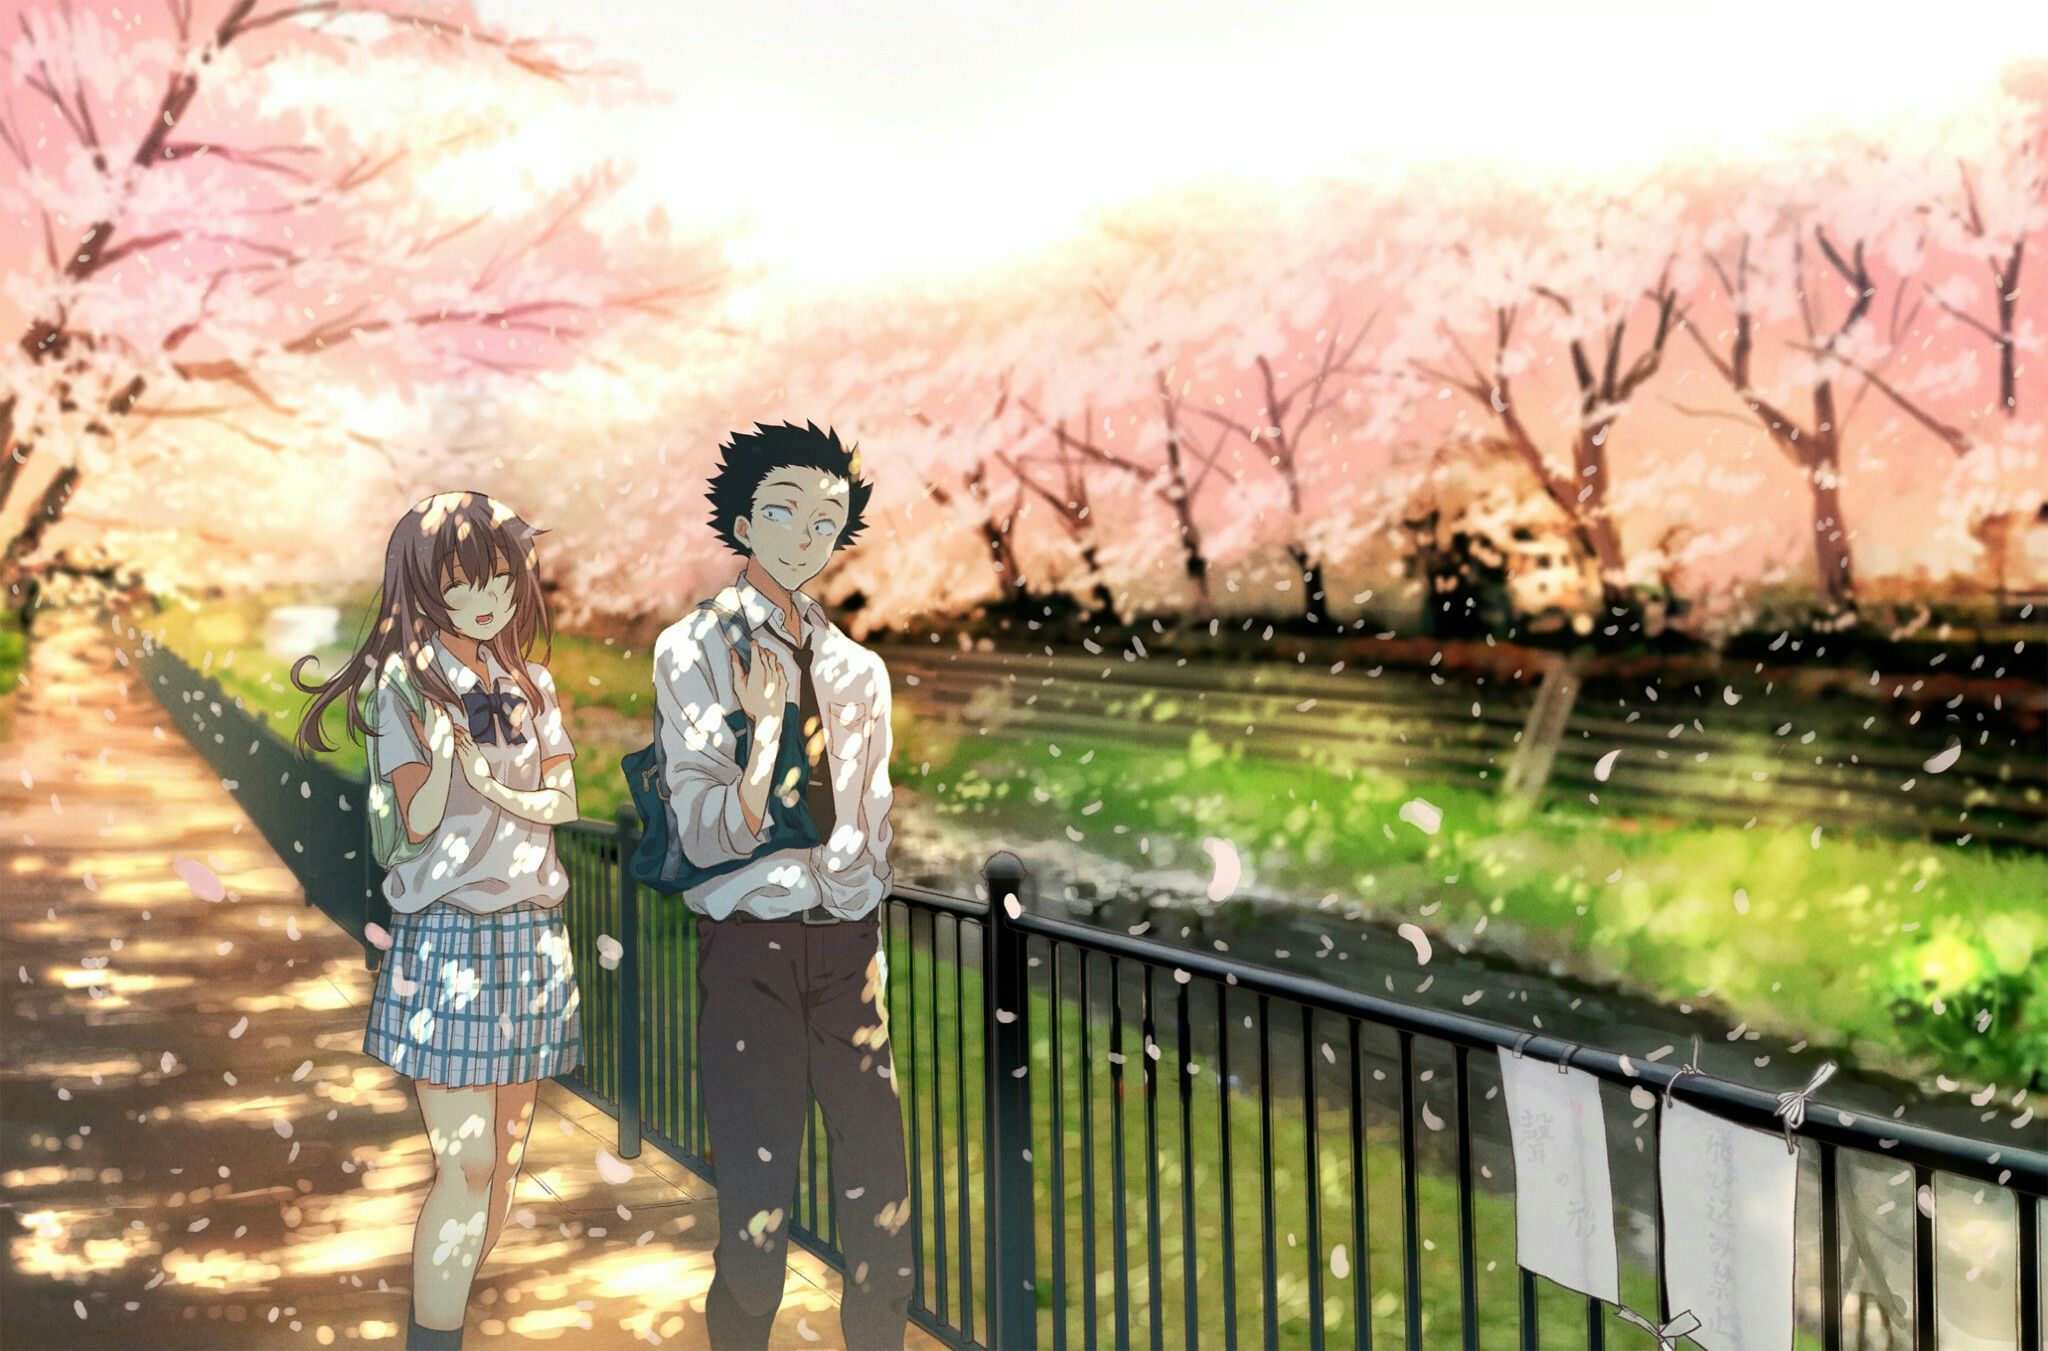 Anime images by Nada sharawy on Koe no katachi Anime